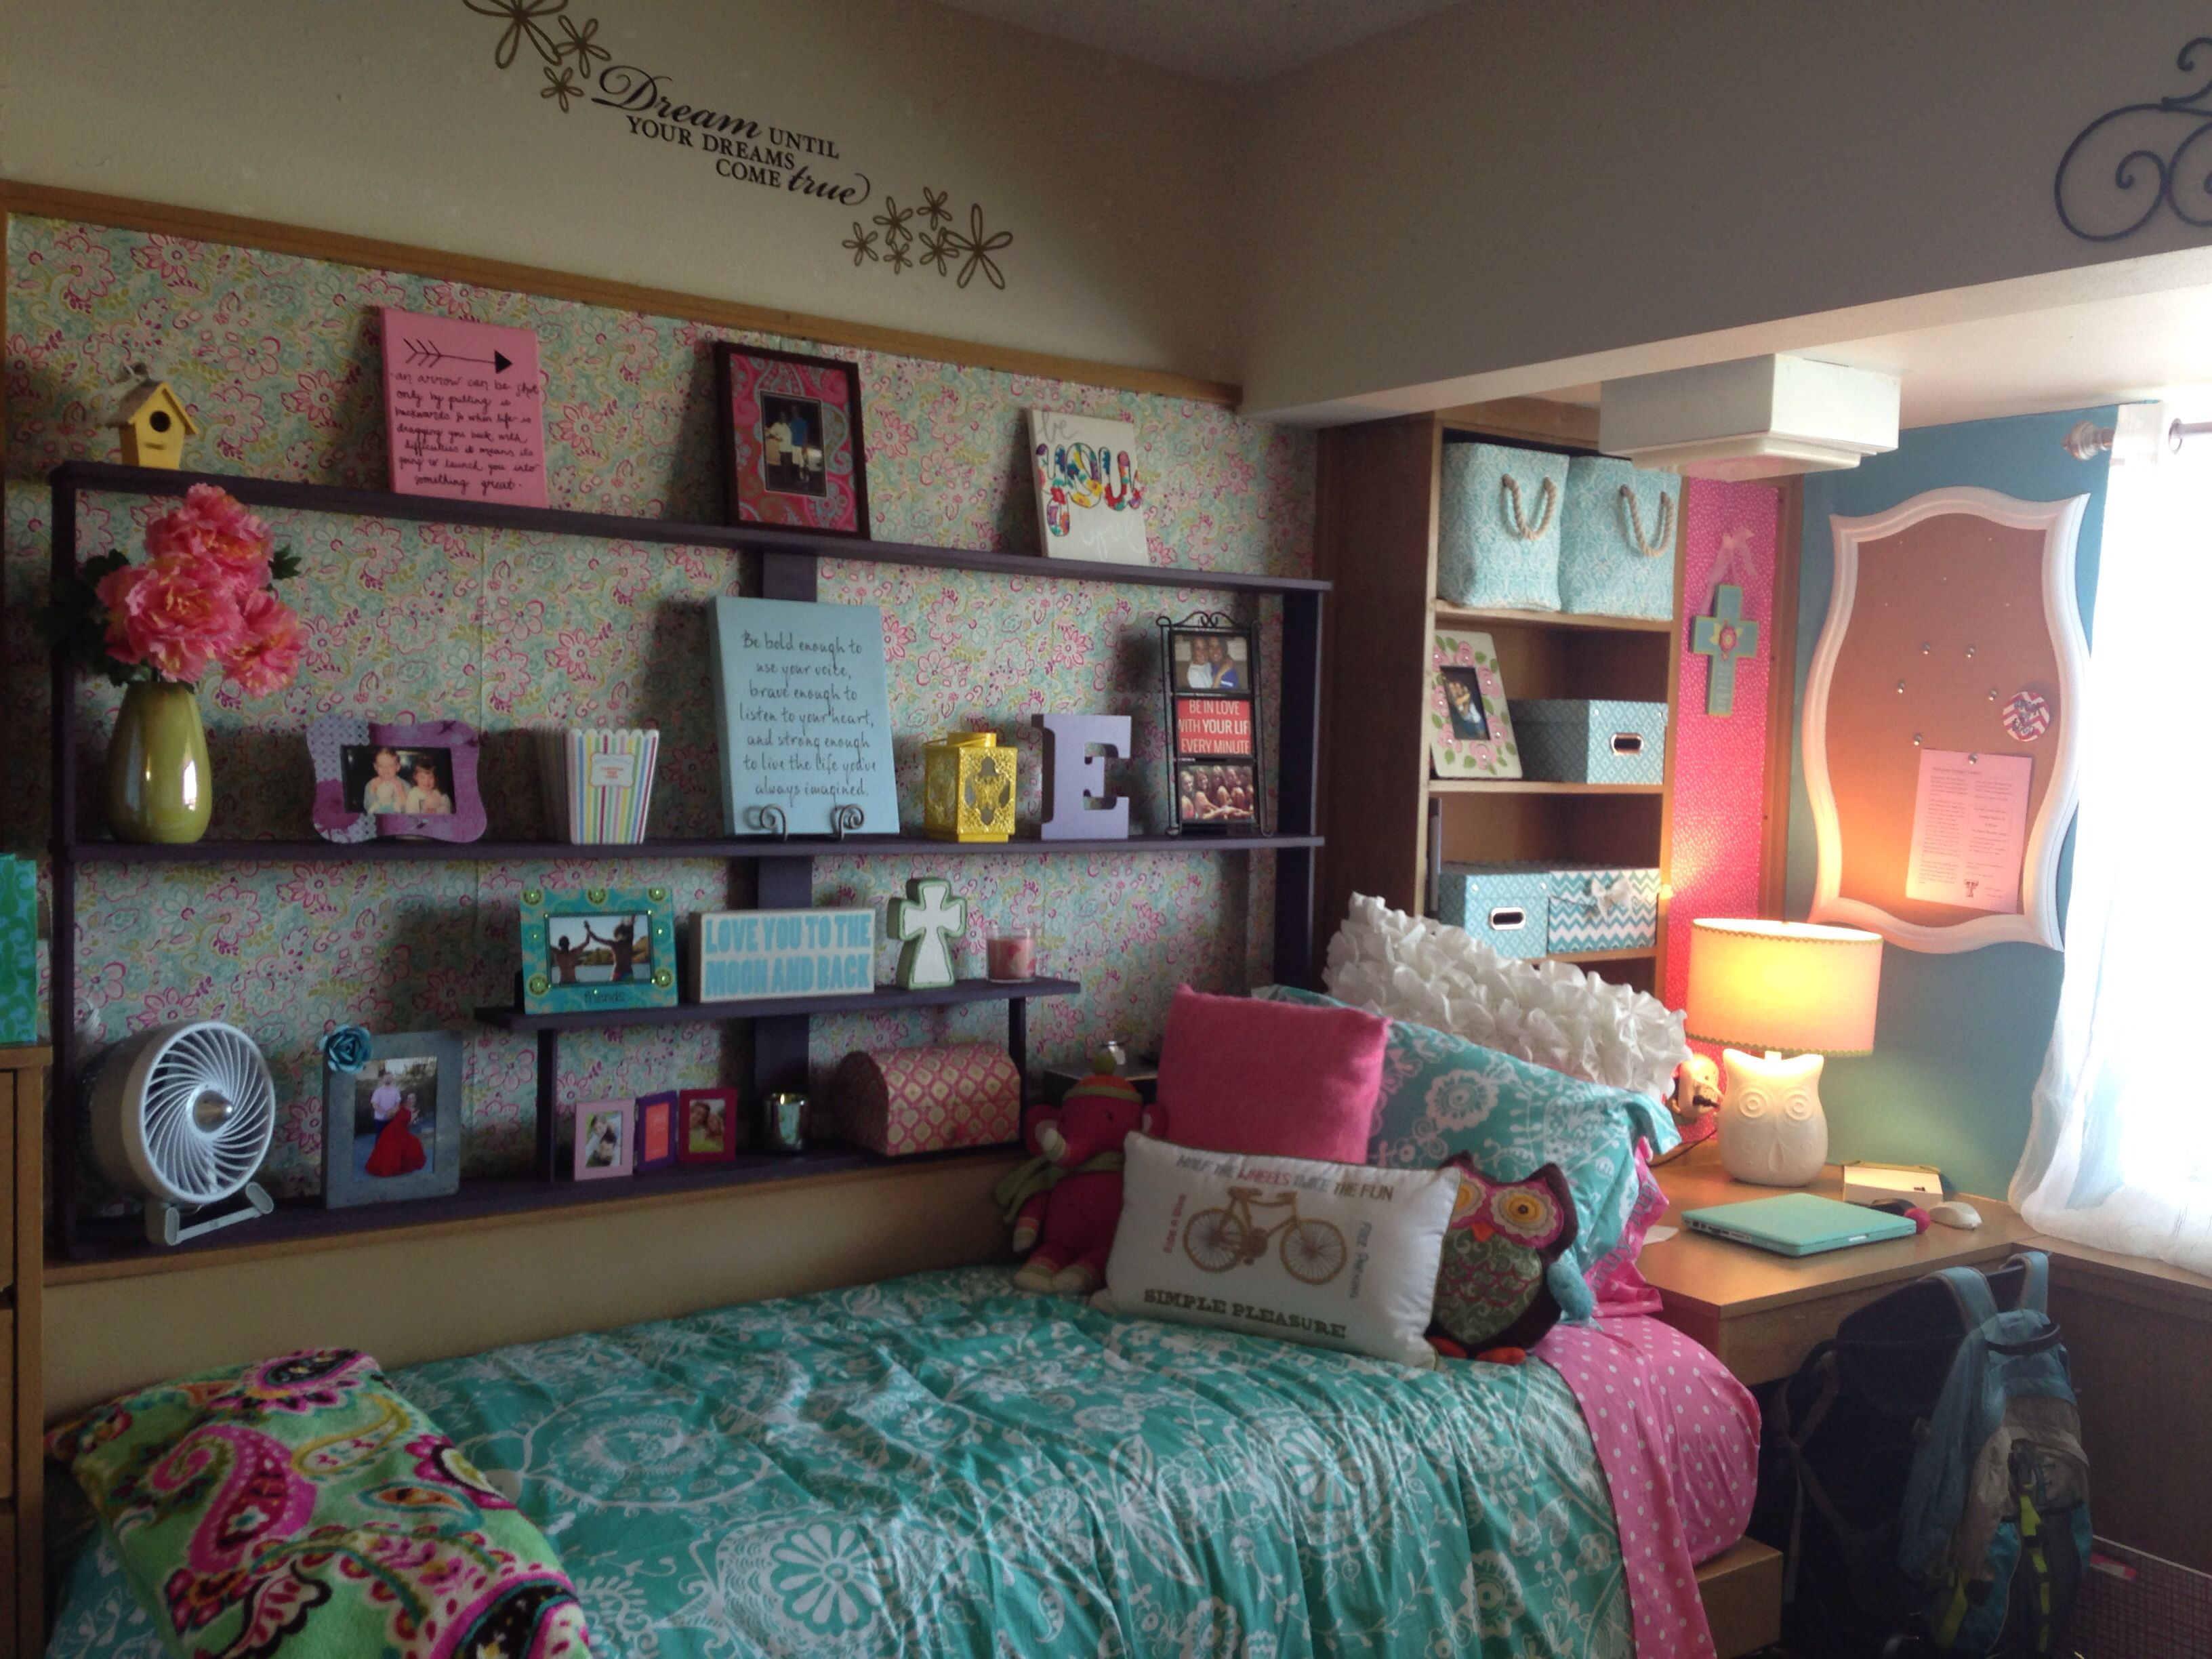 Dorm room decor college pinterest for Dorm living room ideas